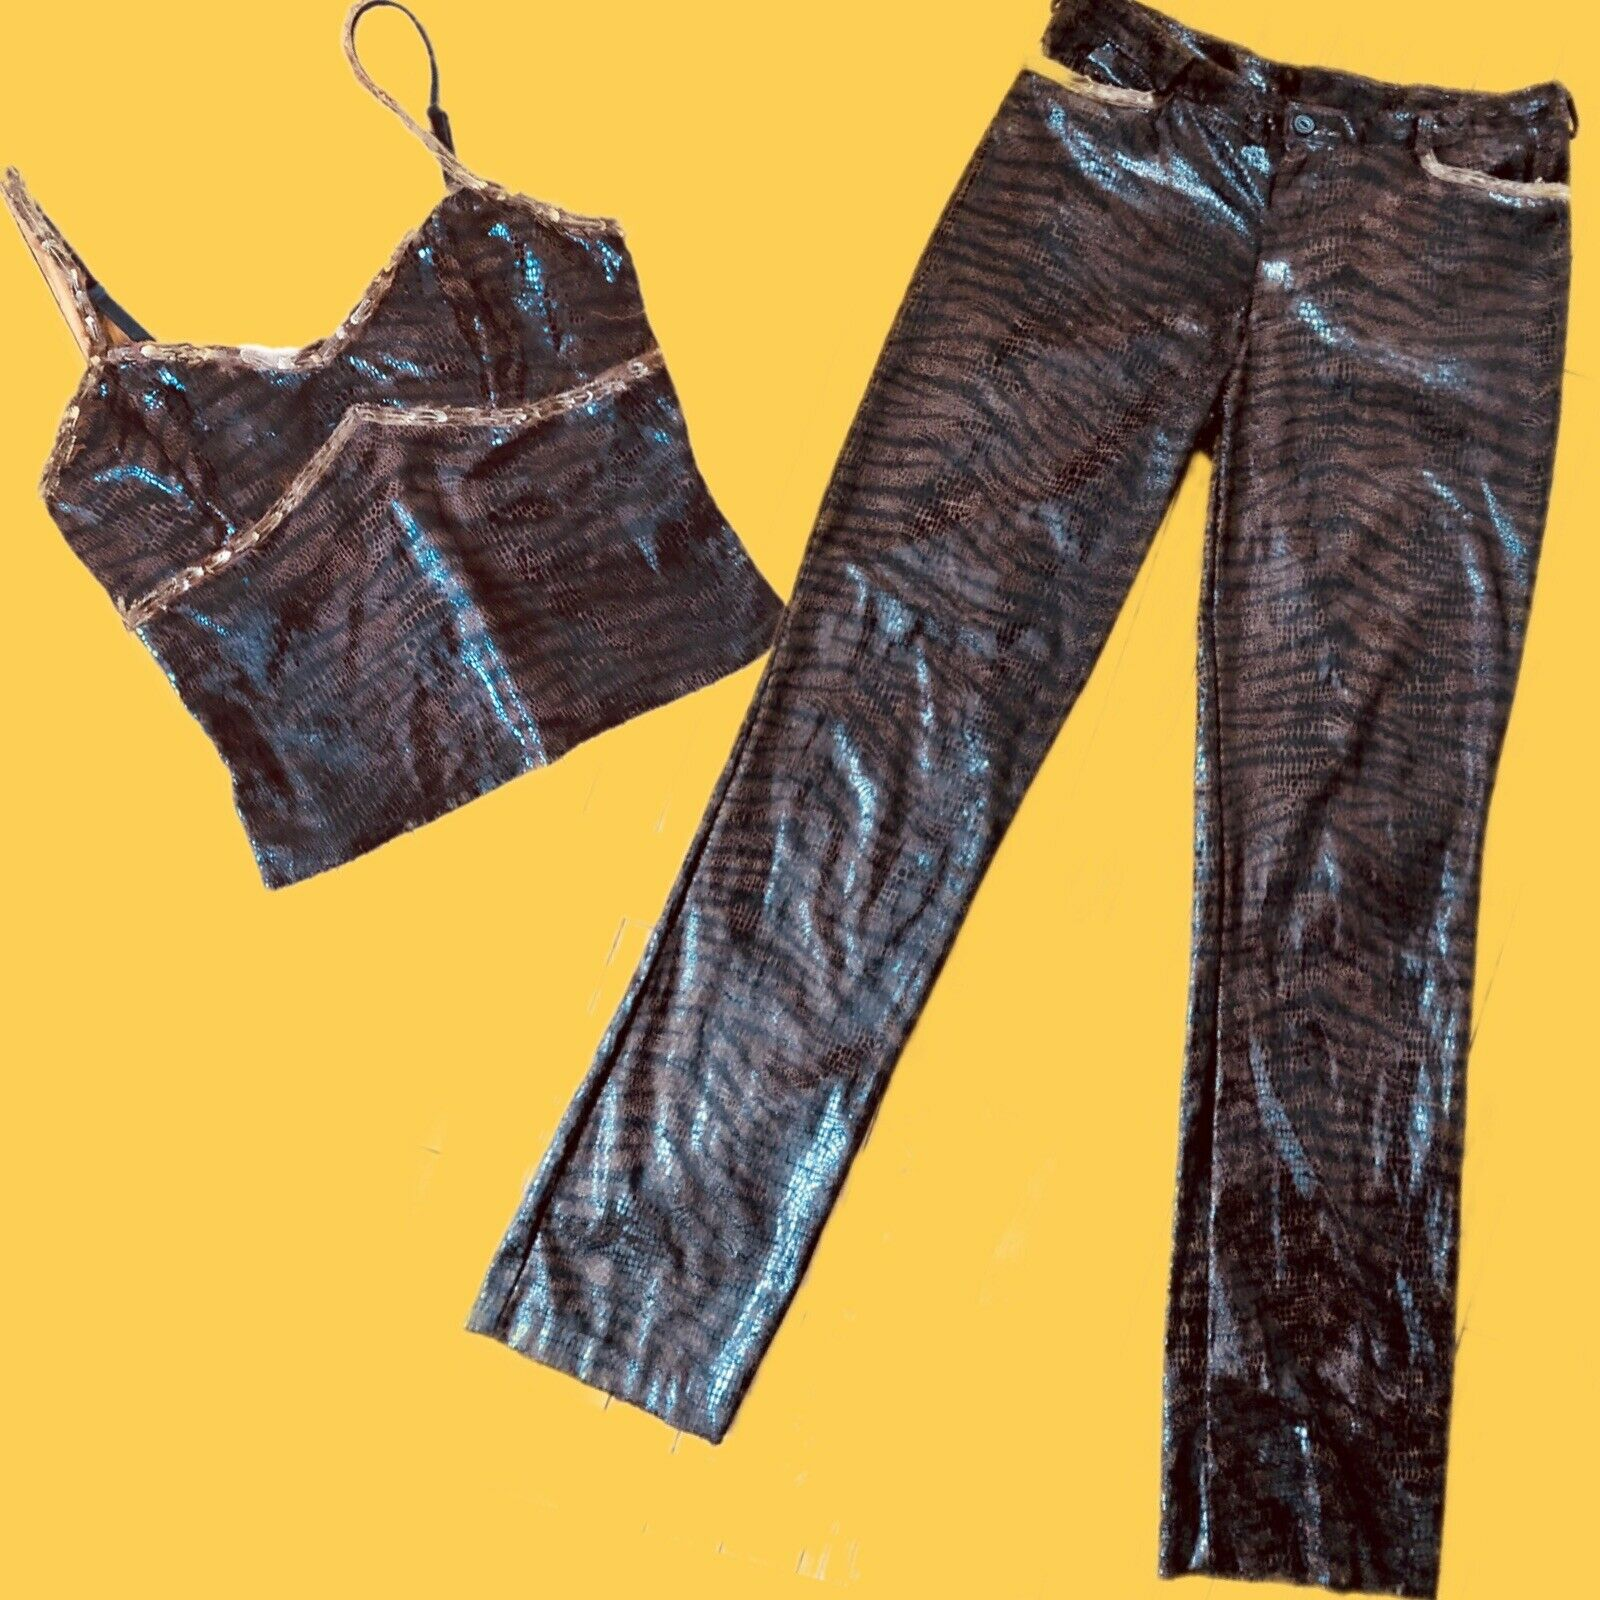 VTG 90s BETSEY JOHNSON 2 PC TIGER & SNAKESKIN SET